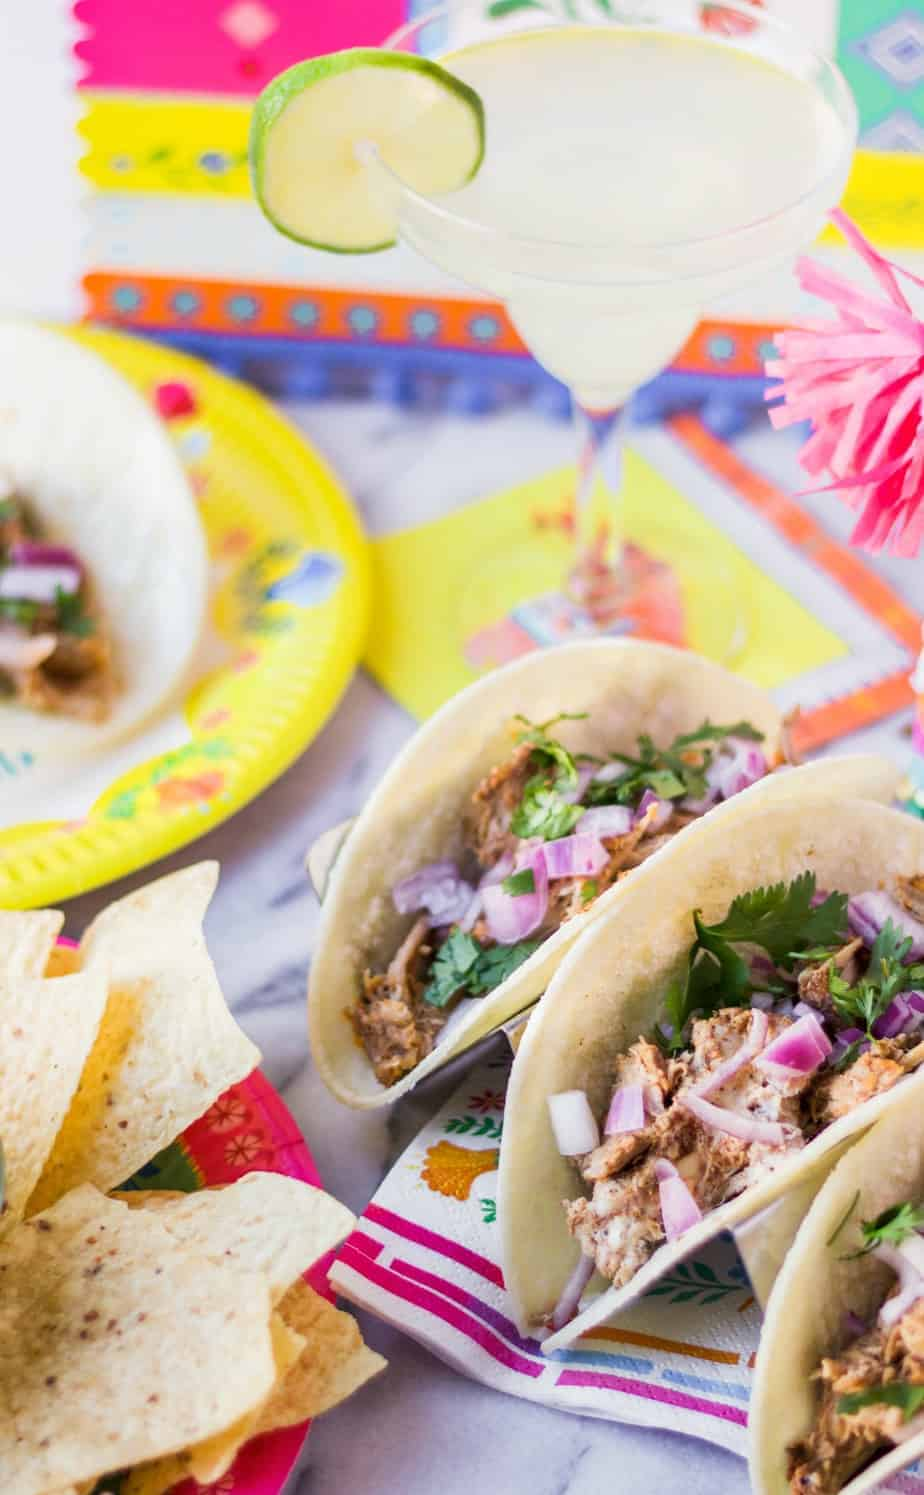 carnitas tacos for a taco bar party on corn tortillas